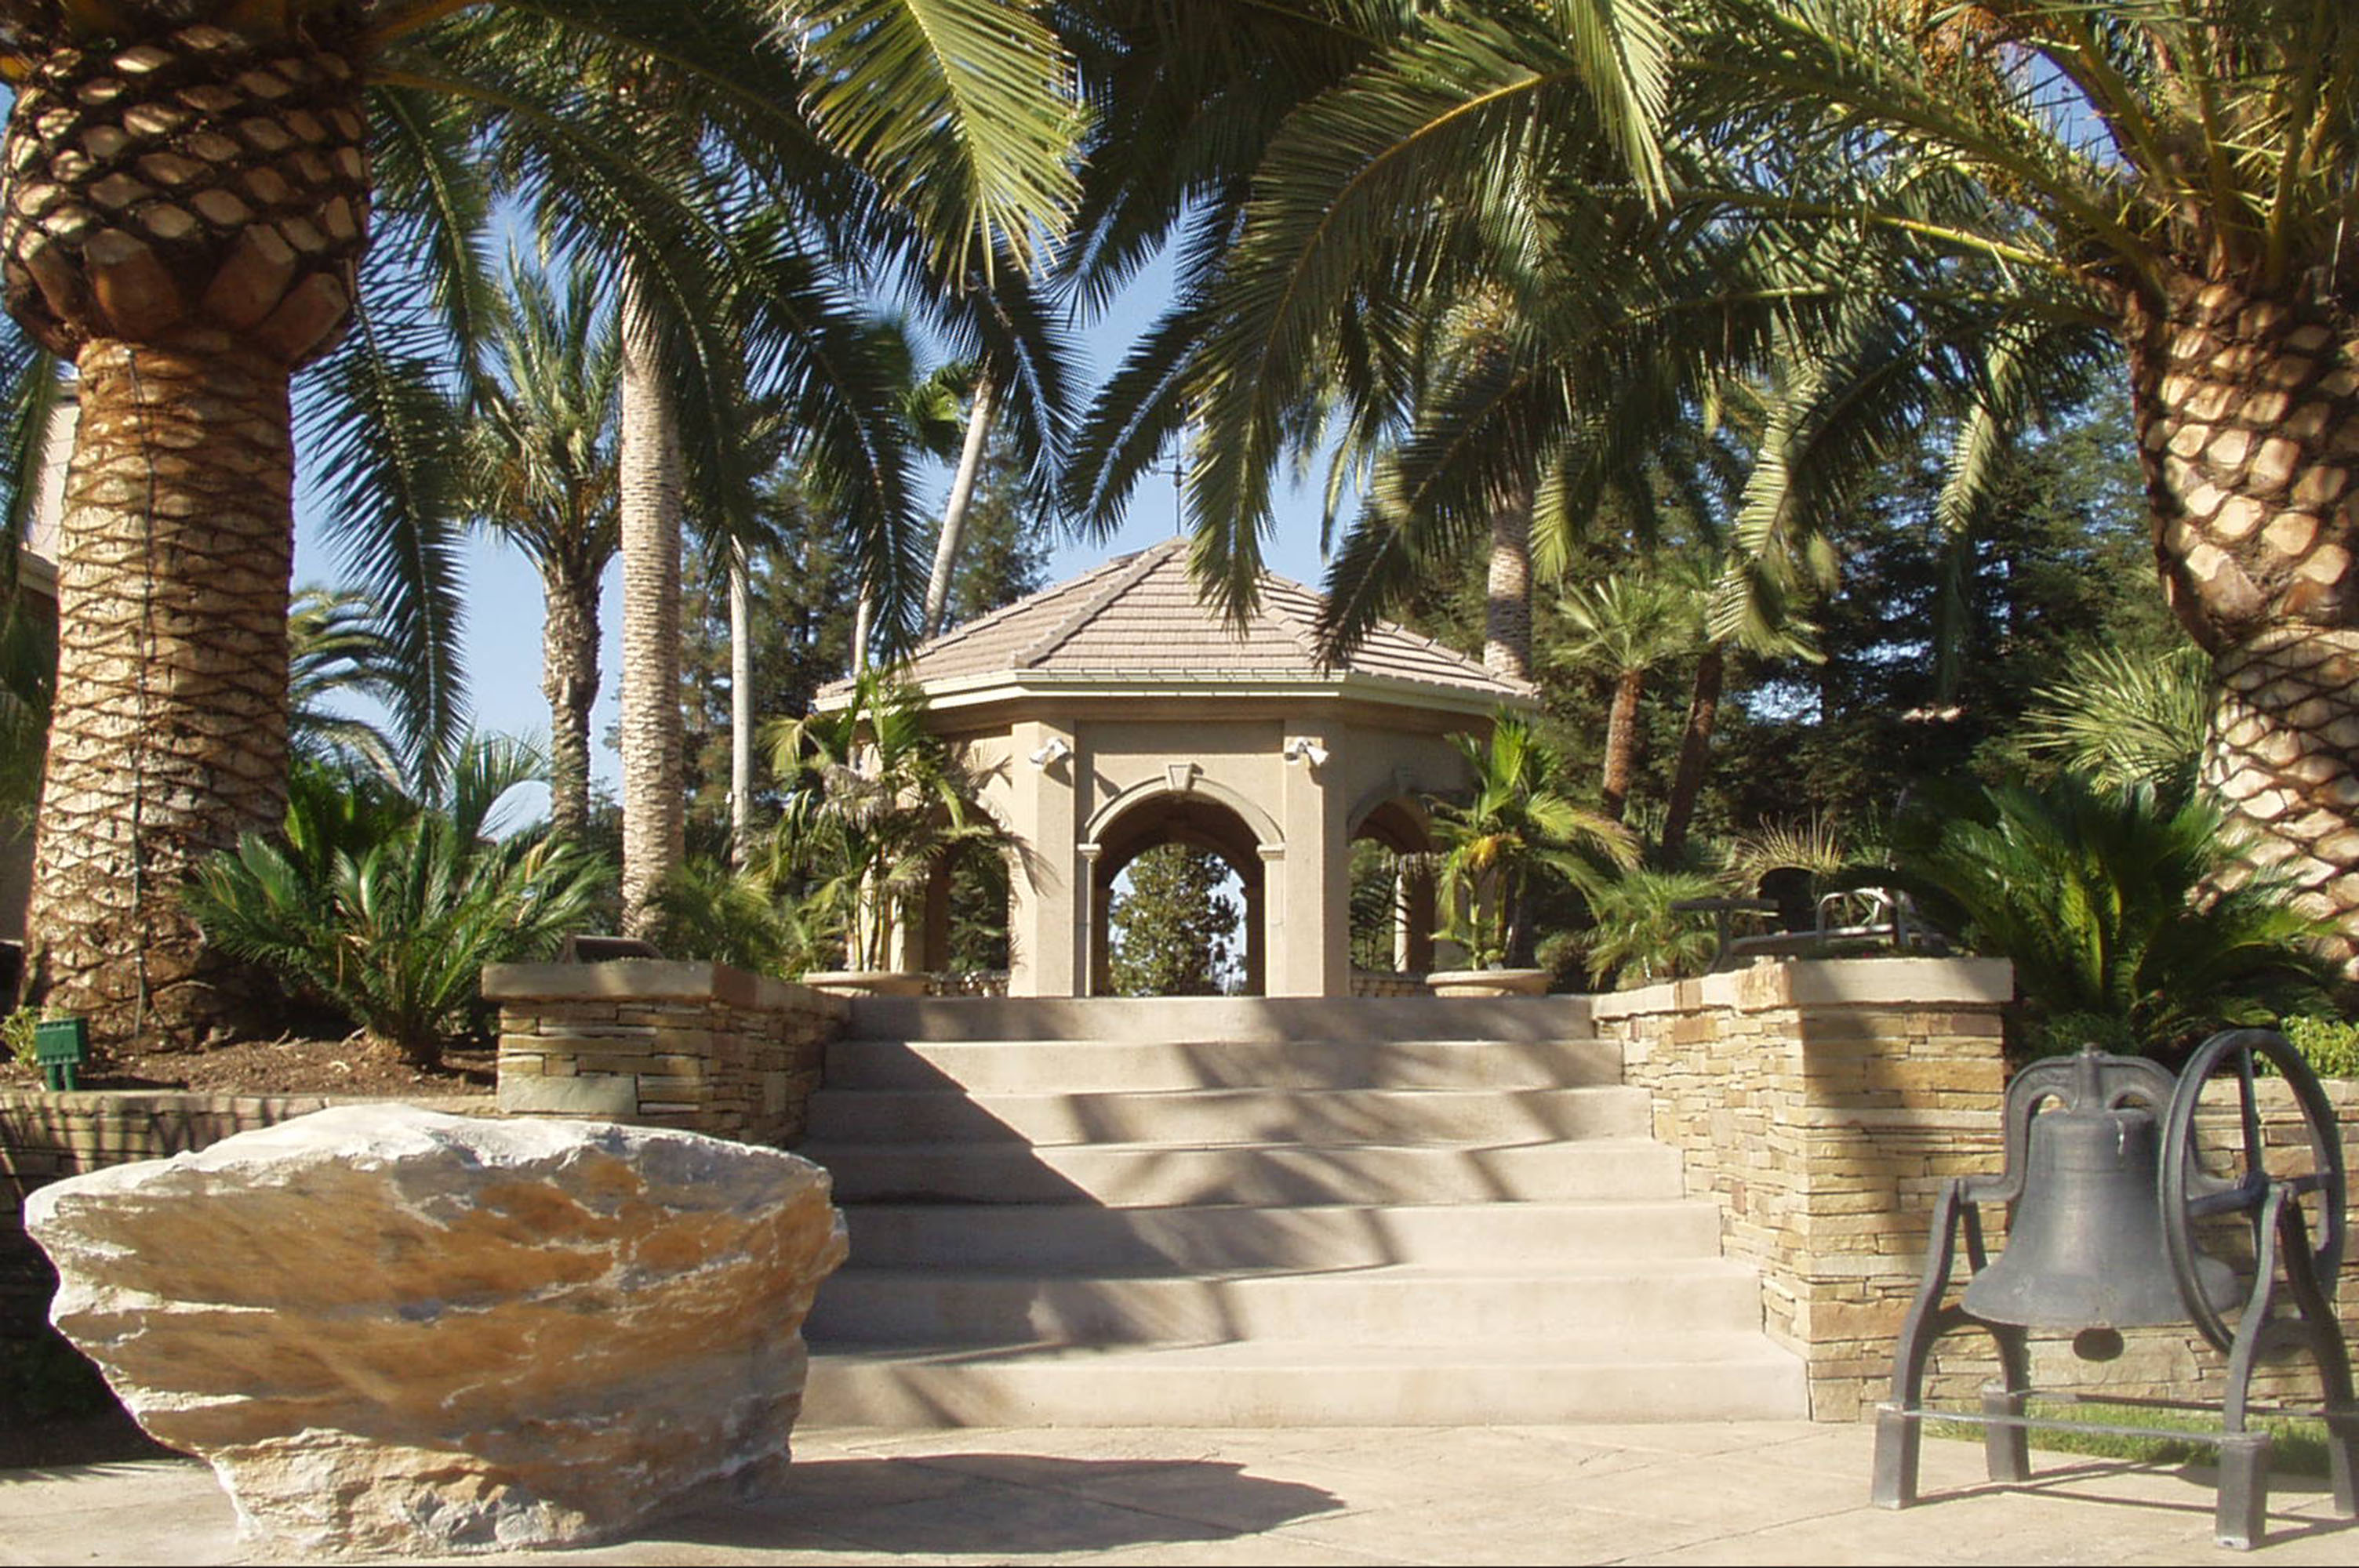 Stately gazebo in tropical landscape